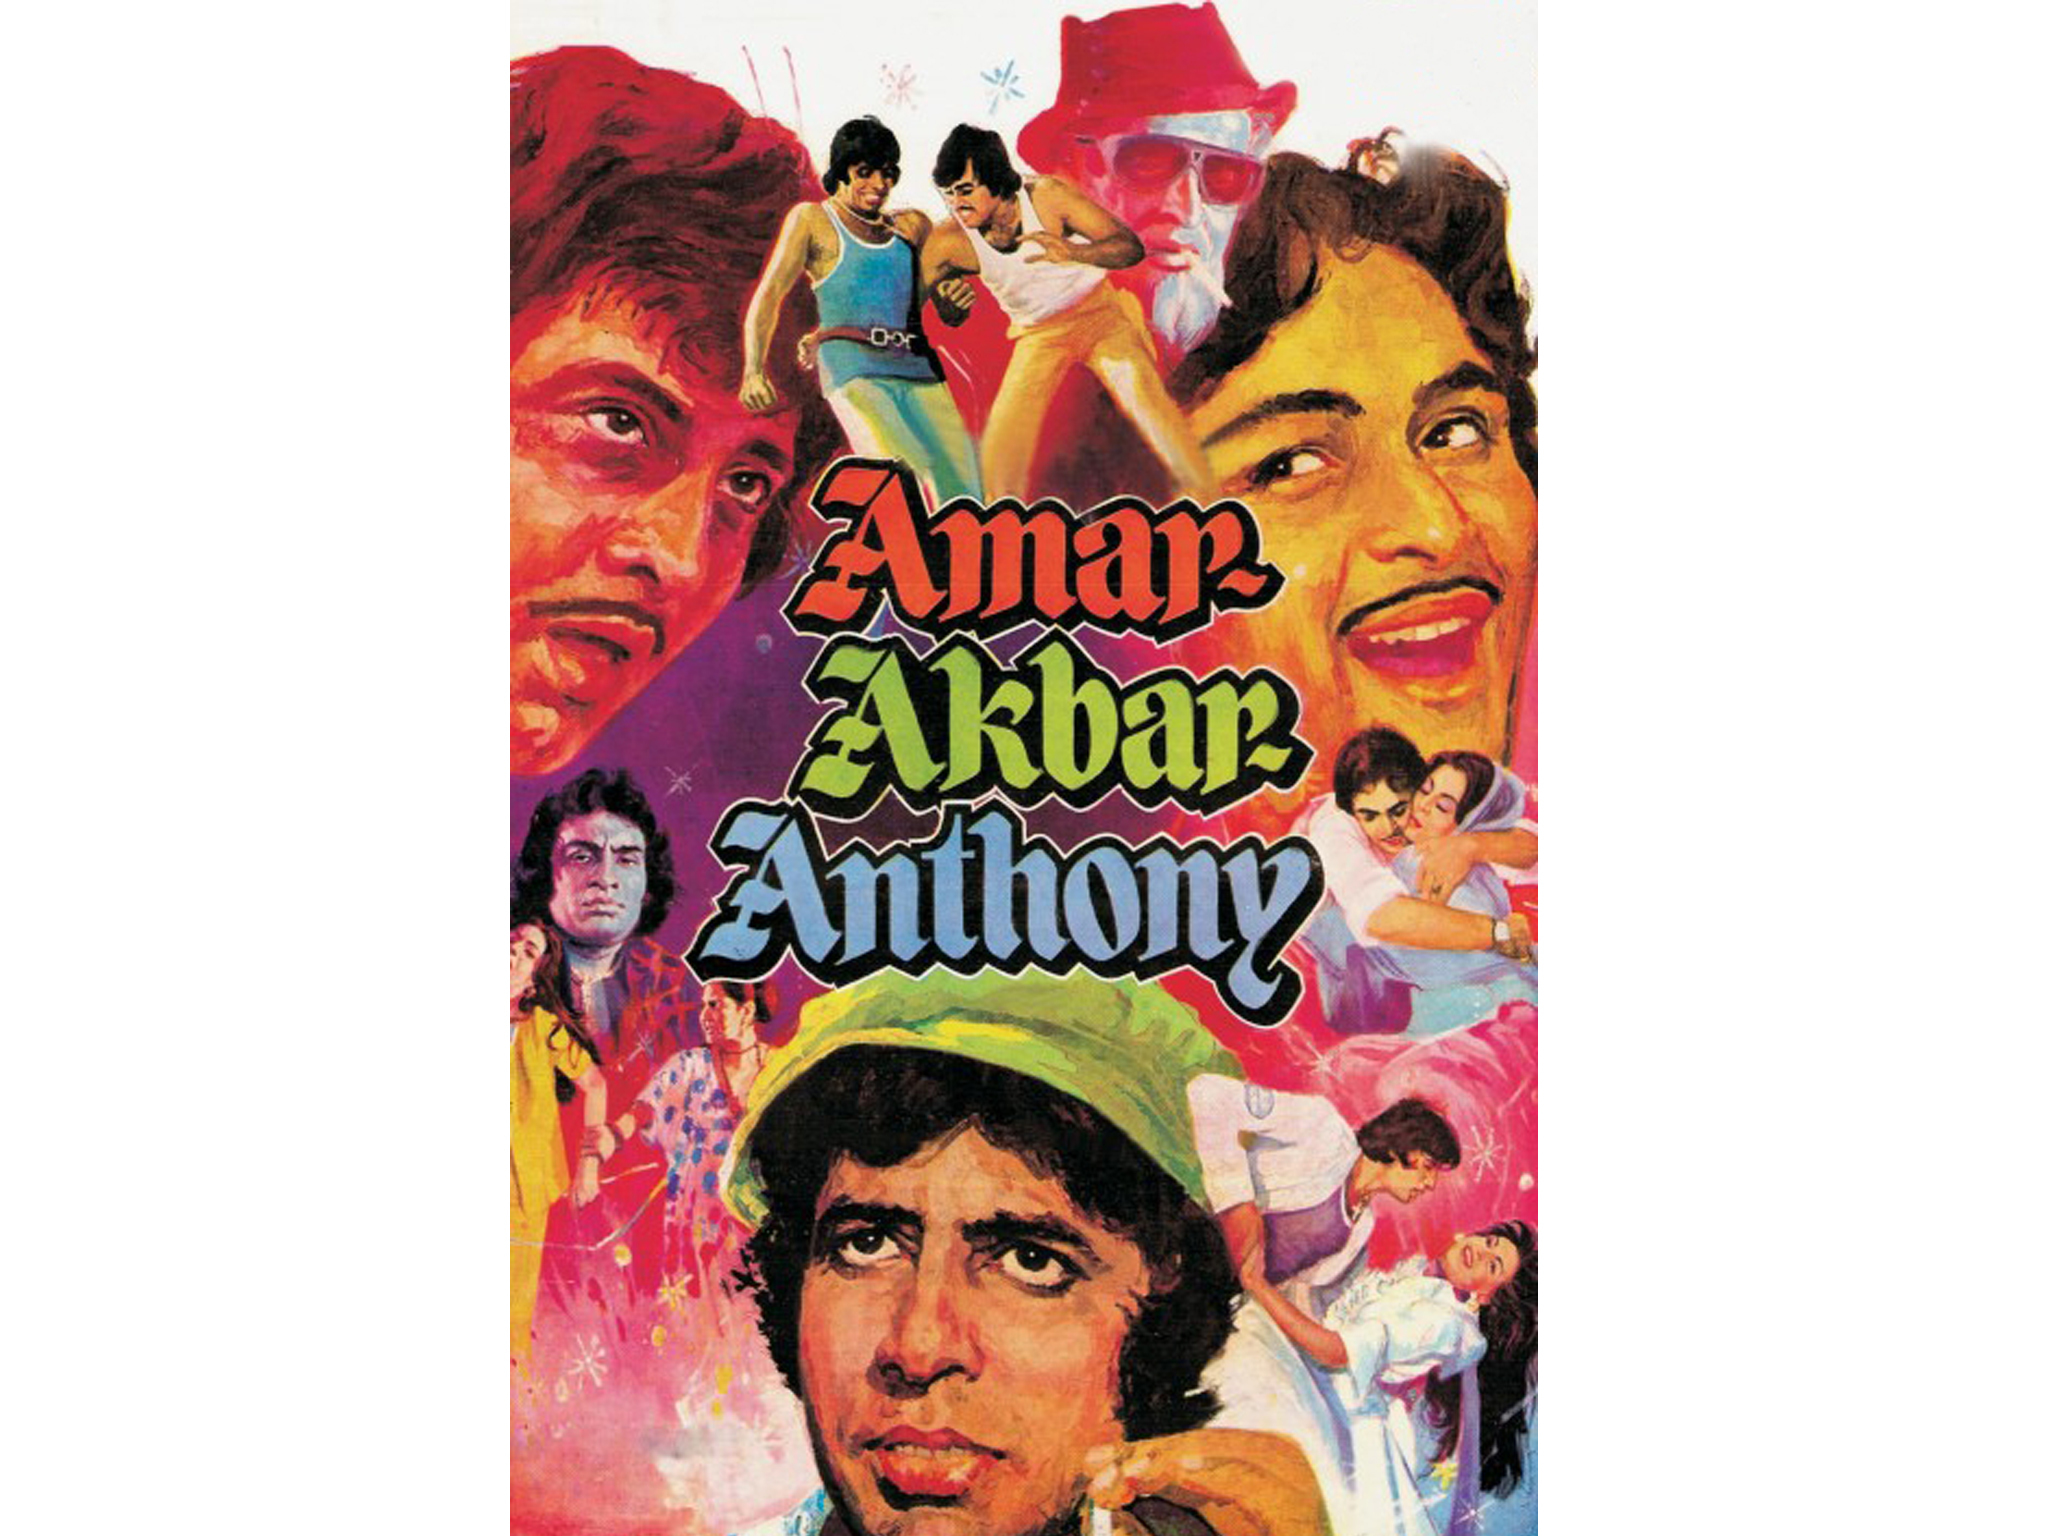 Hindi movie: Amar Akbar Anthony